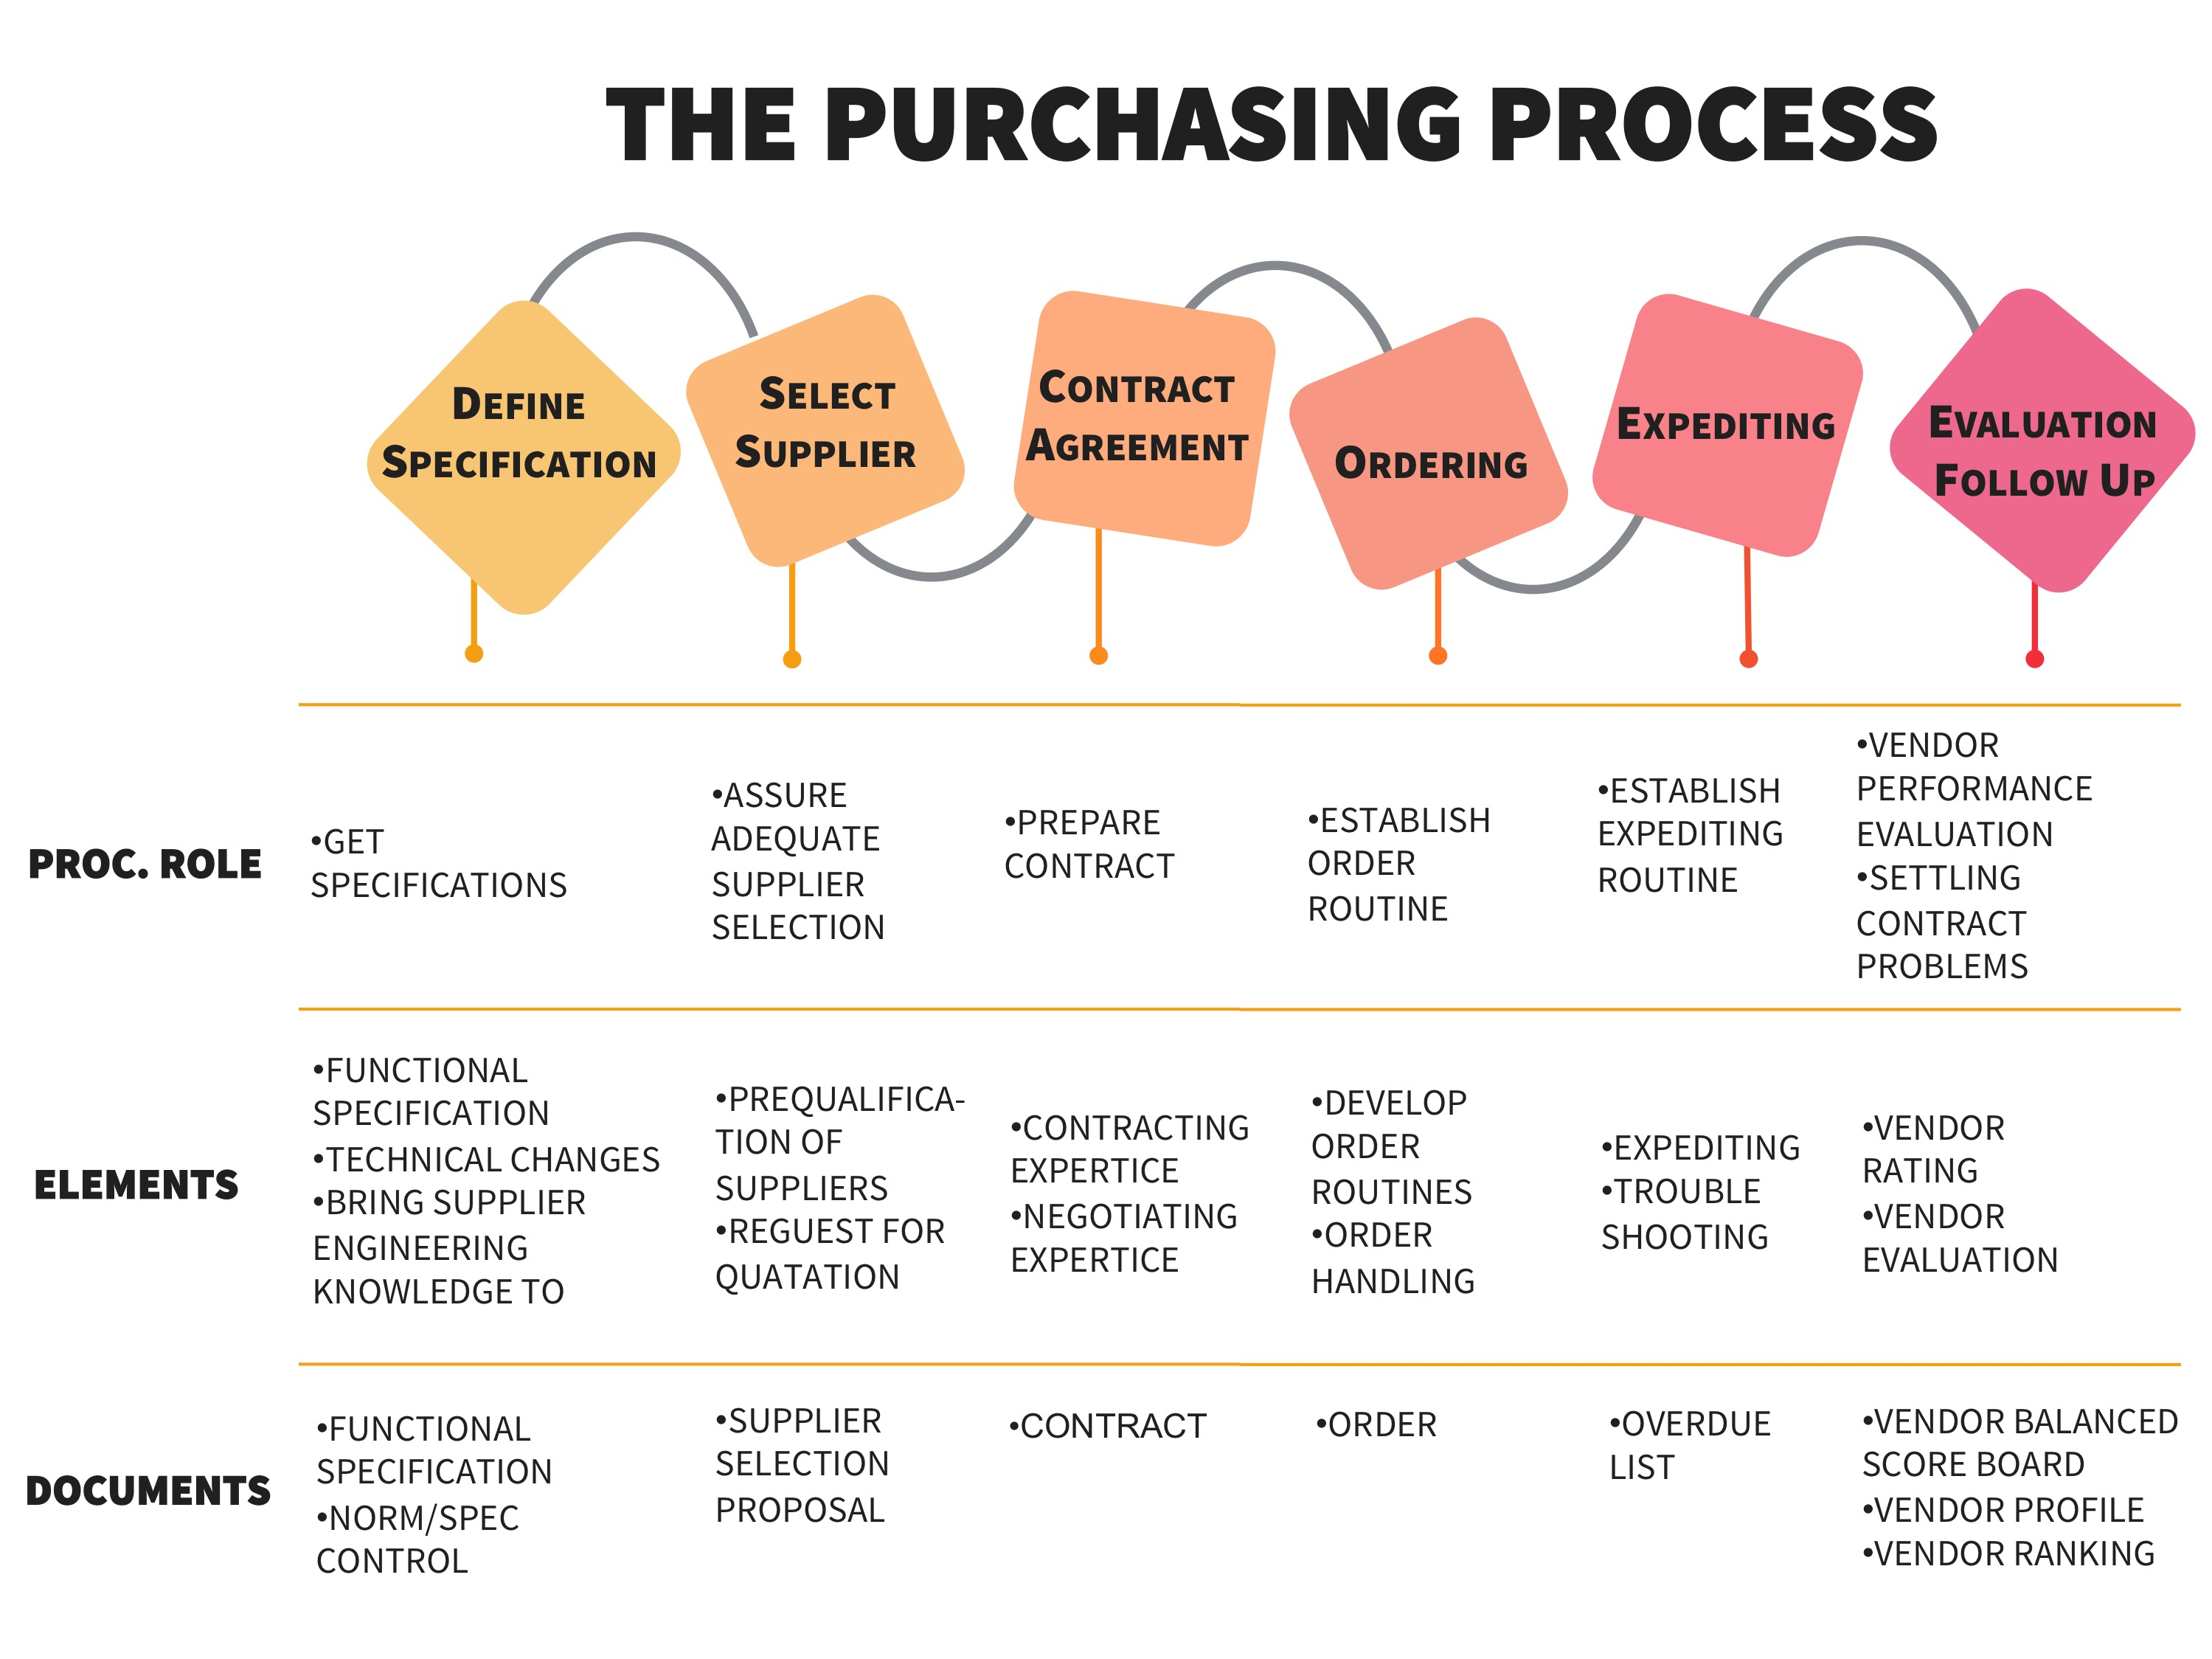 Buying Behavior and Purchasing Process